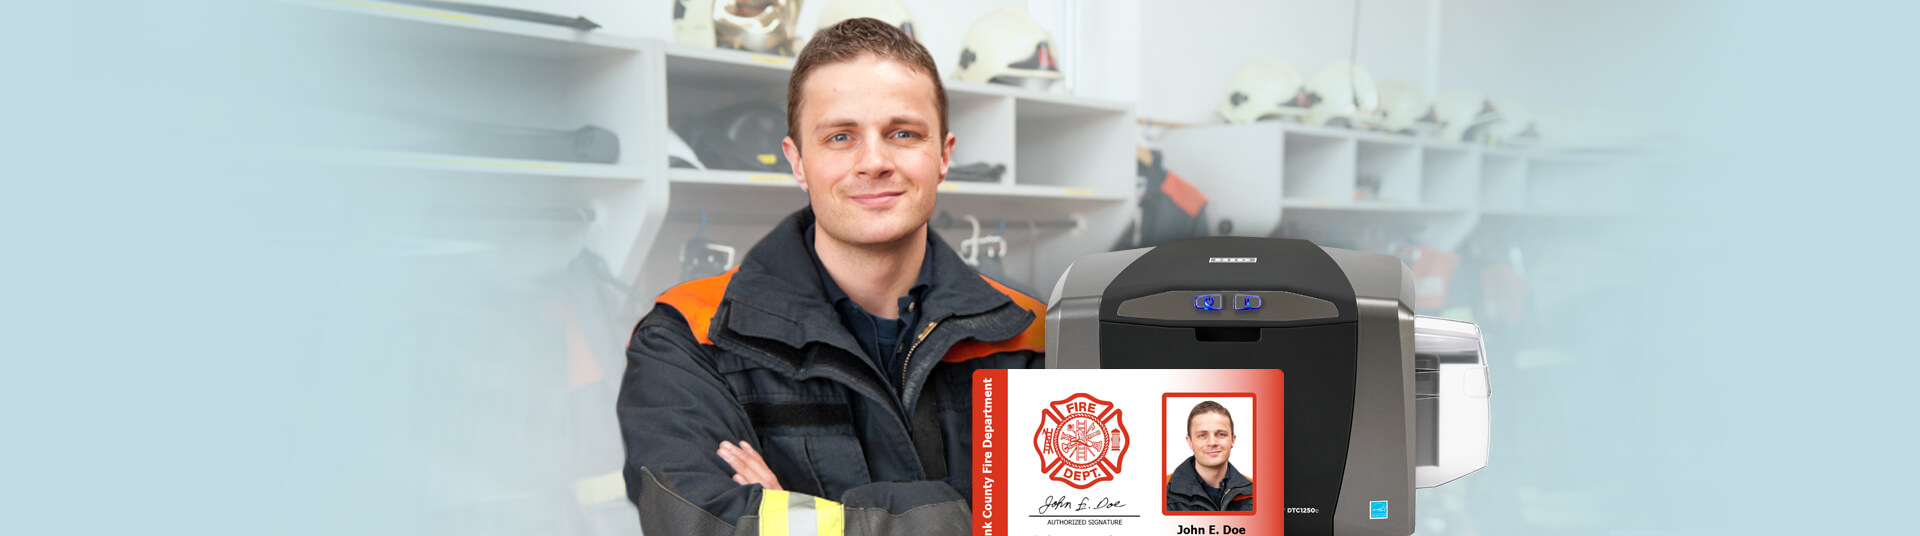 Fire Department ID Cards